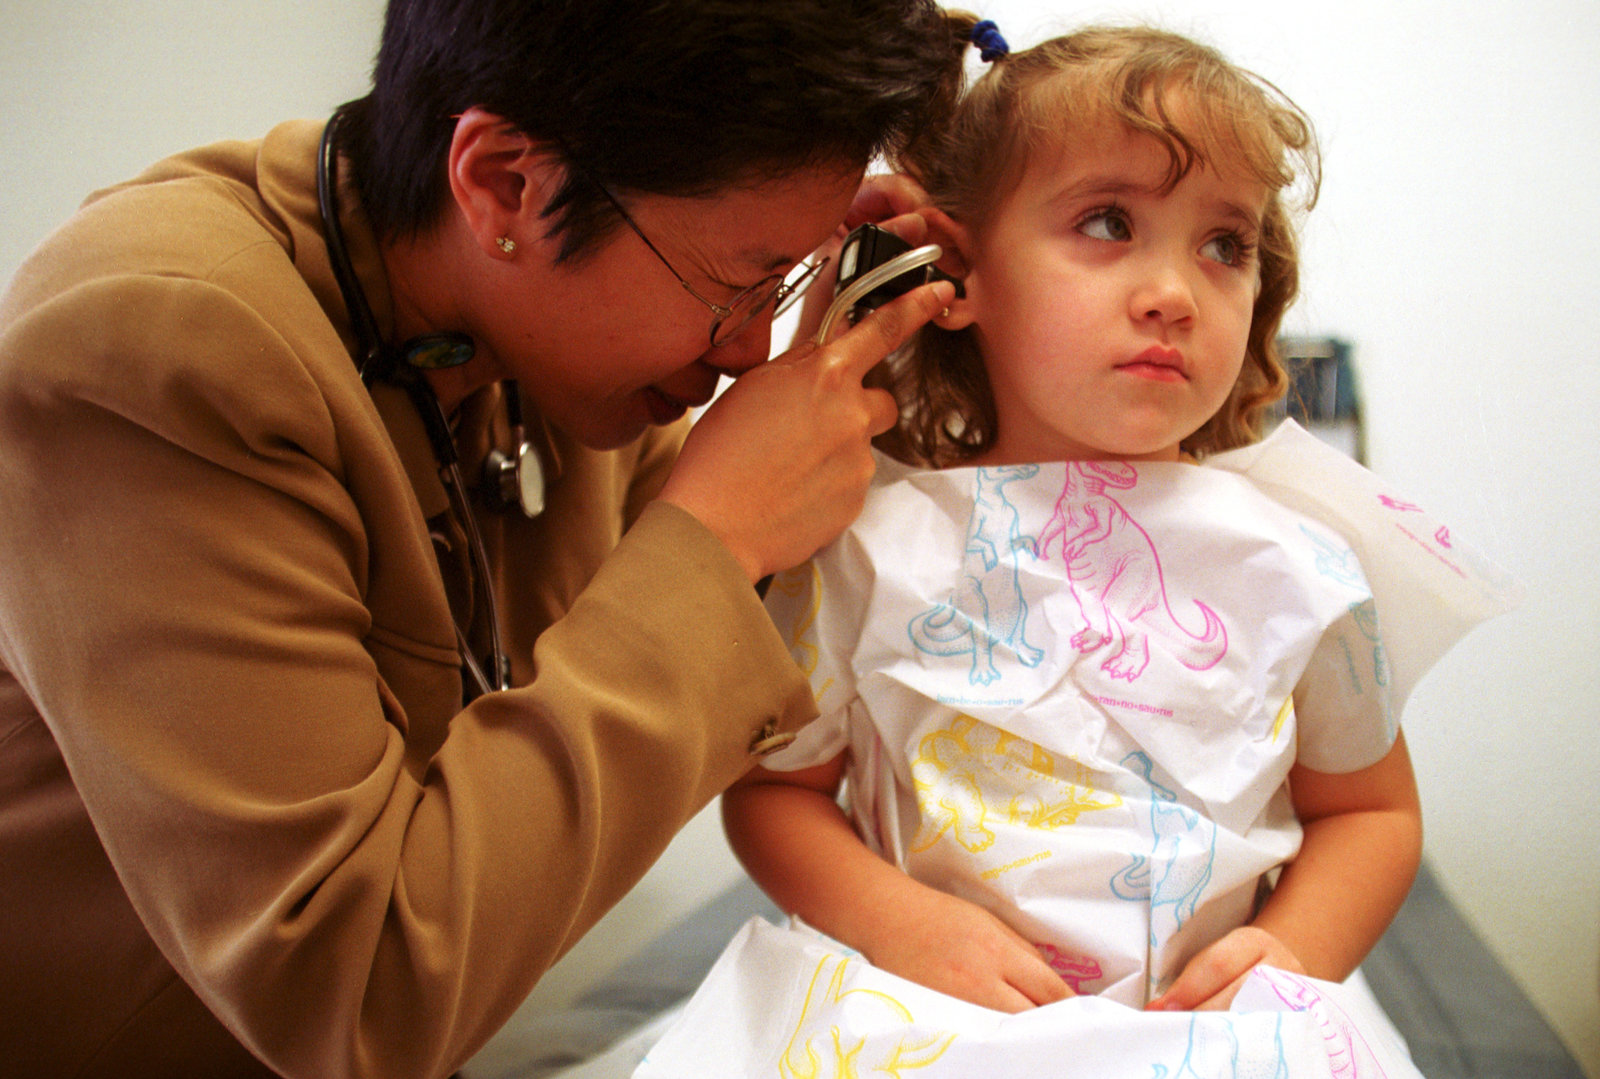 Pediatricians can play an important role in explaining climate impacts on children's health